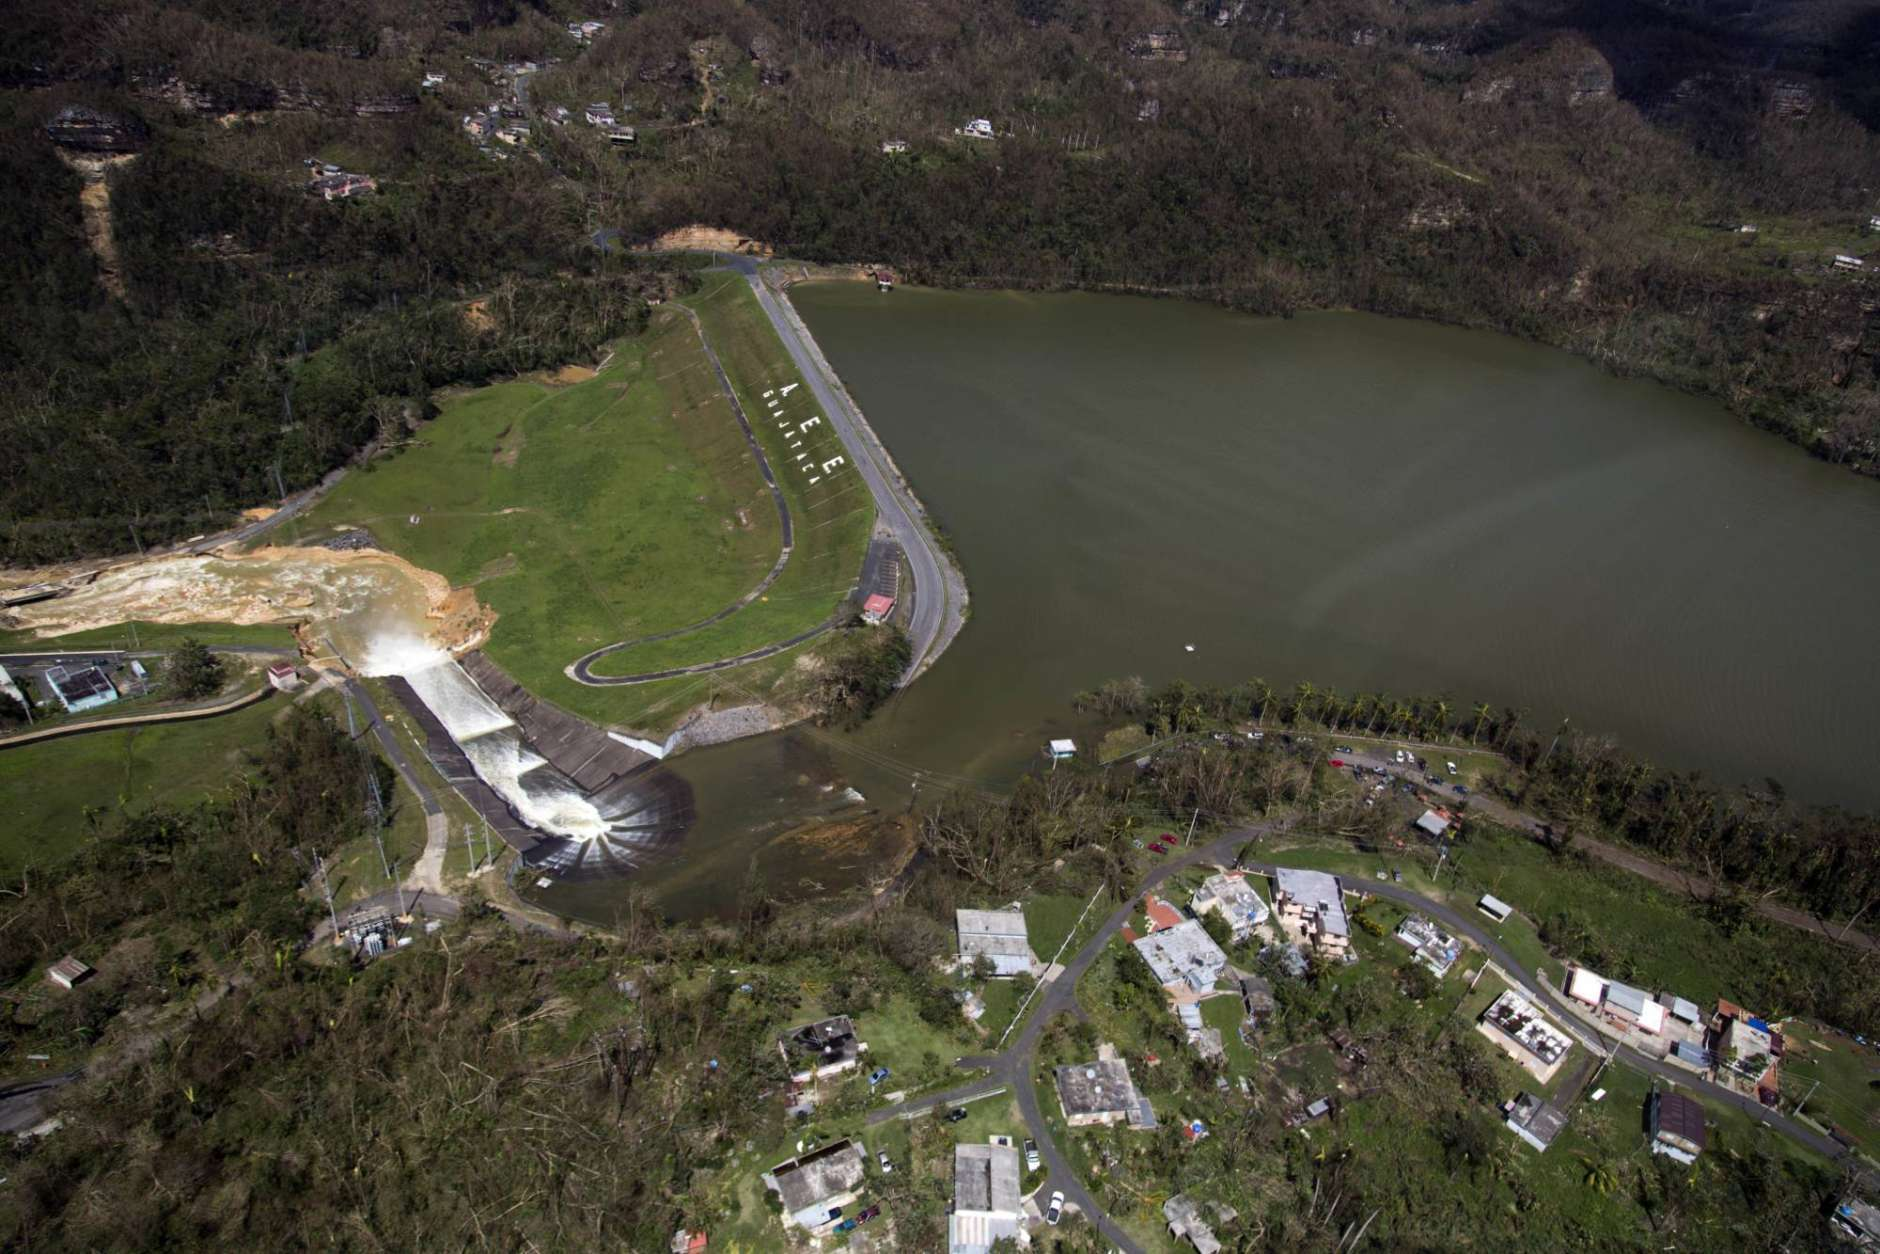 Water drains from the Guajataca Dam in Quebradillas, Puerto Rico, Saturday, Sept. 23, 2017. Puerto Rican officials rushed to evacuate tens of thousands of people downstream of the failing dam and the massive scale of the disaster wrought by Hurricane Maria started to become clear. (AP Photo)